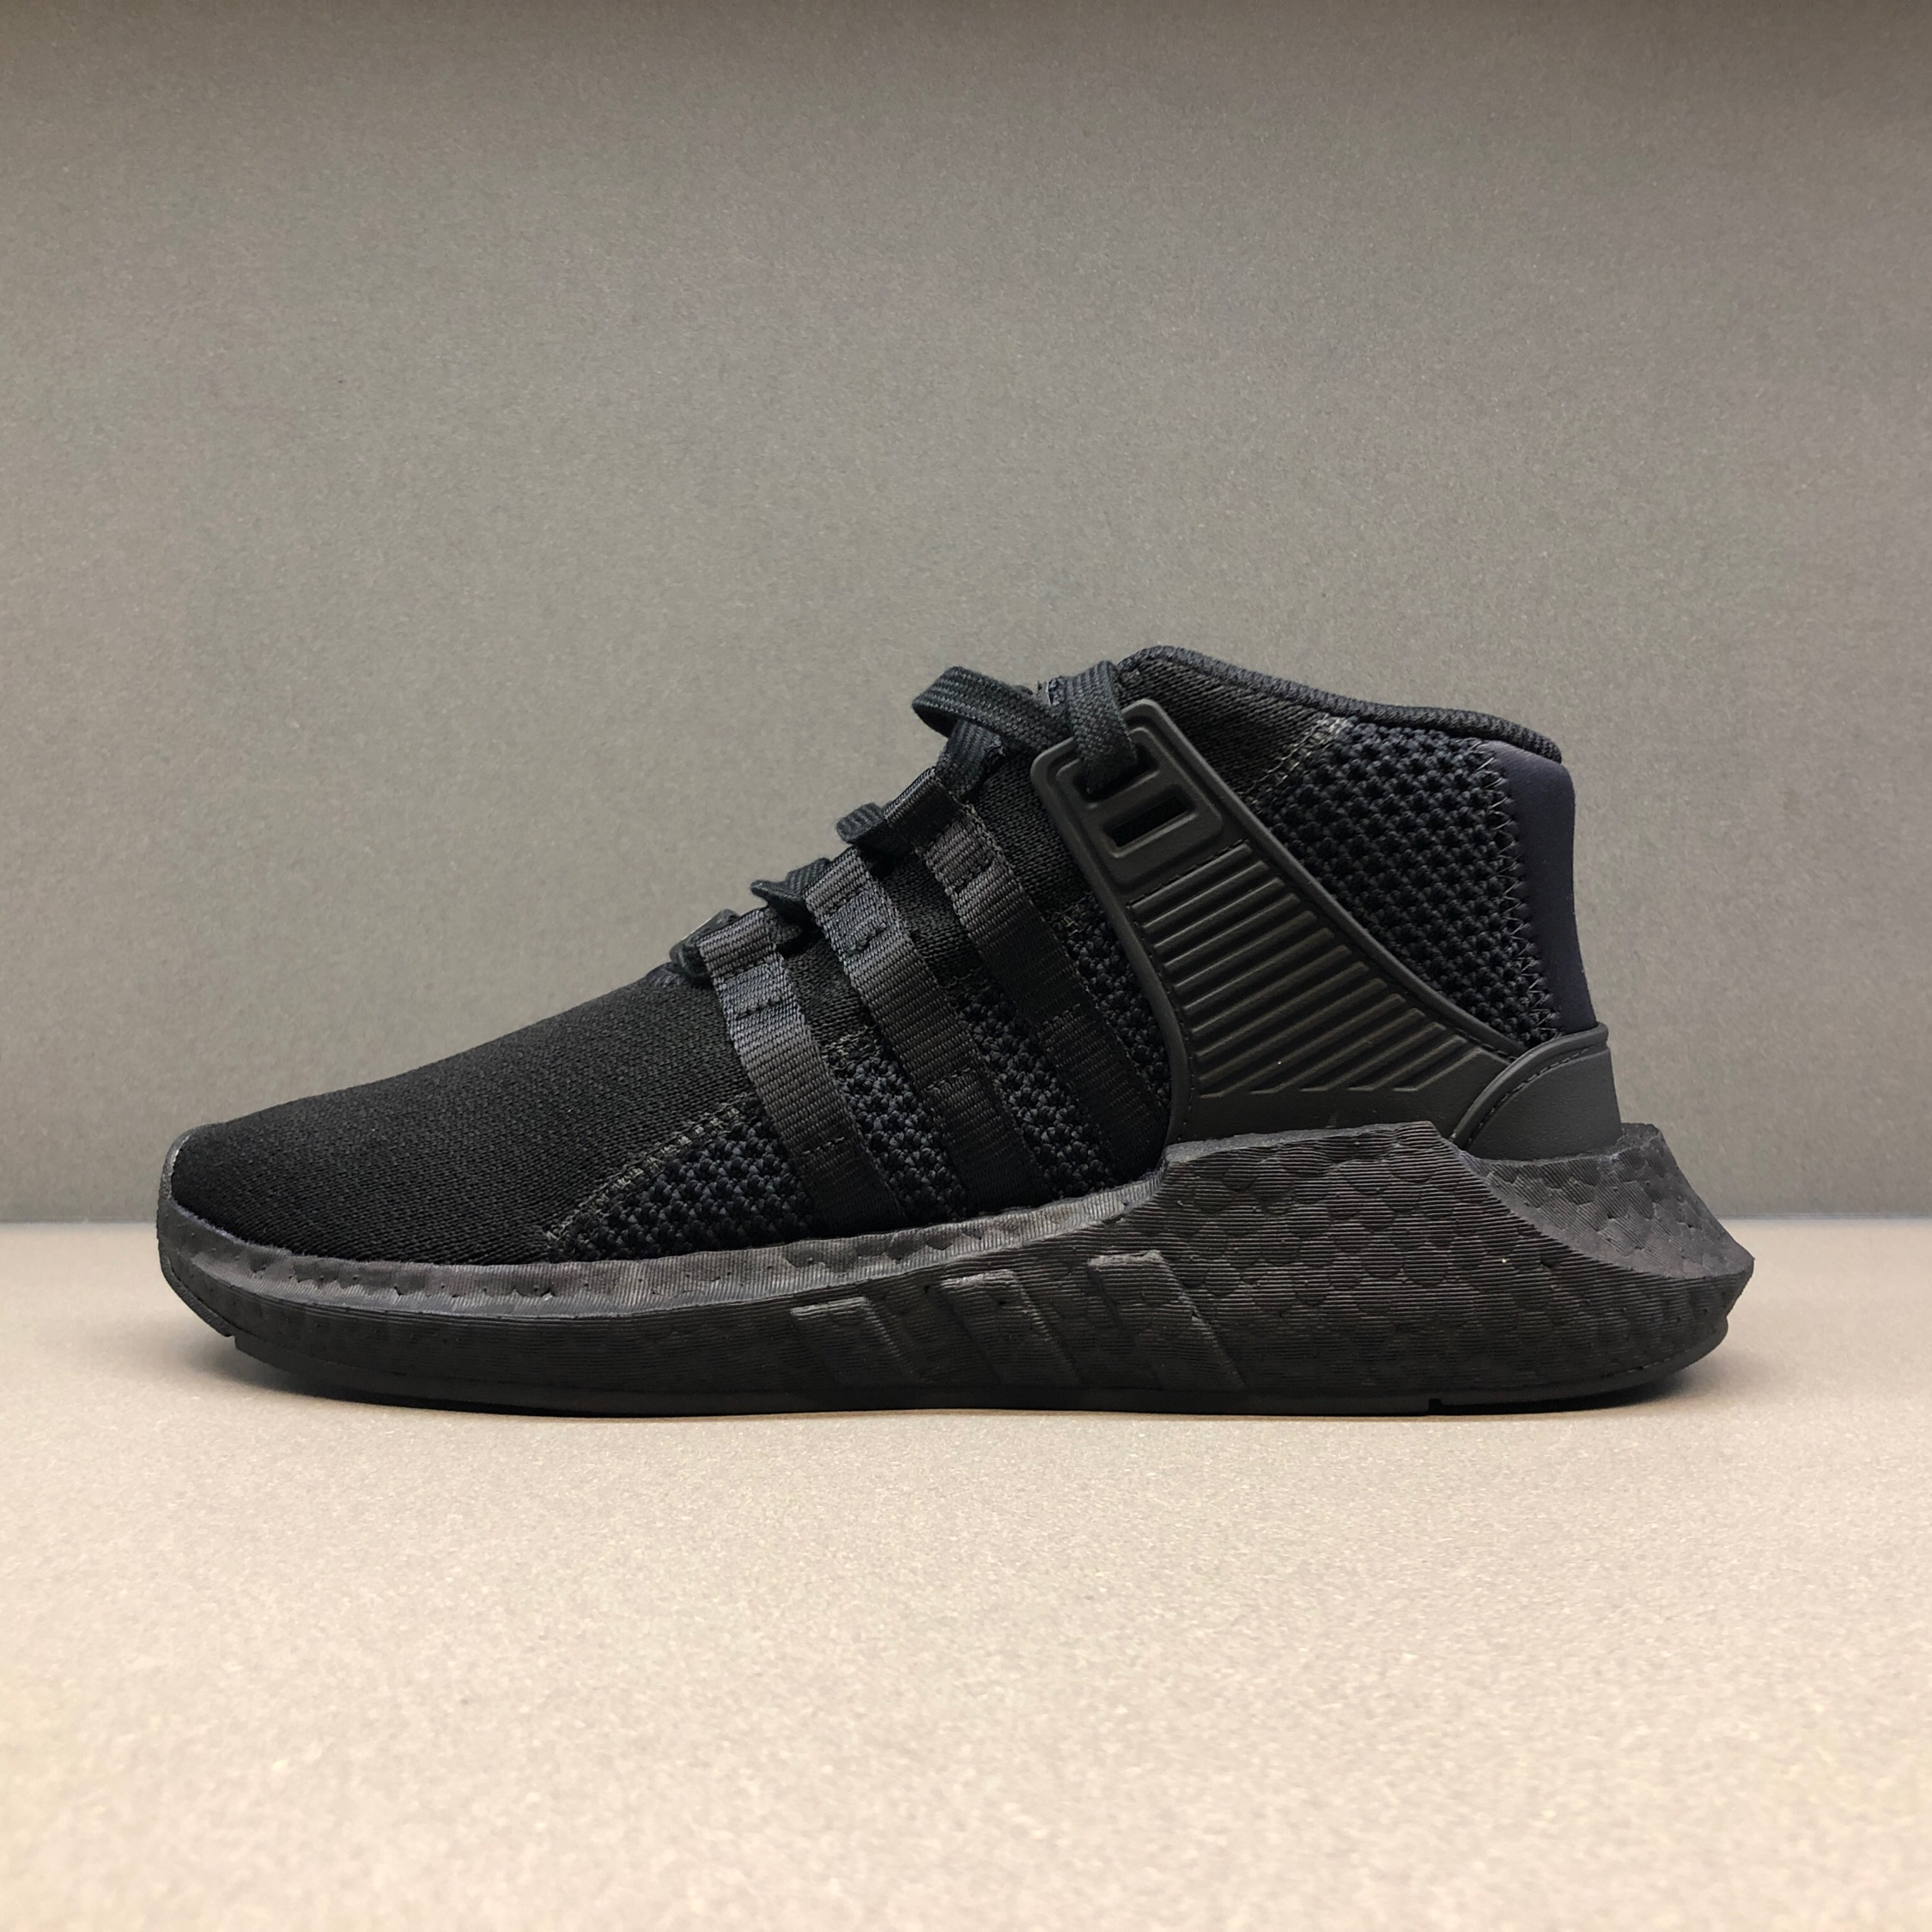 size 40 875dc 1880a Adidas X Mastermind World Eqt Support Future Mid